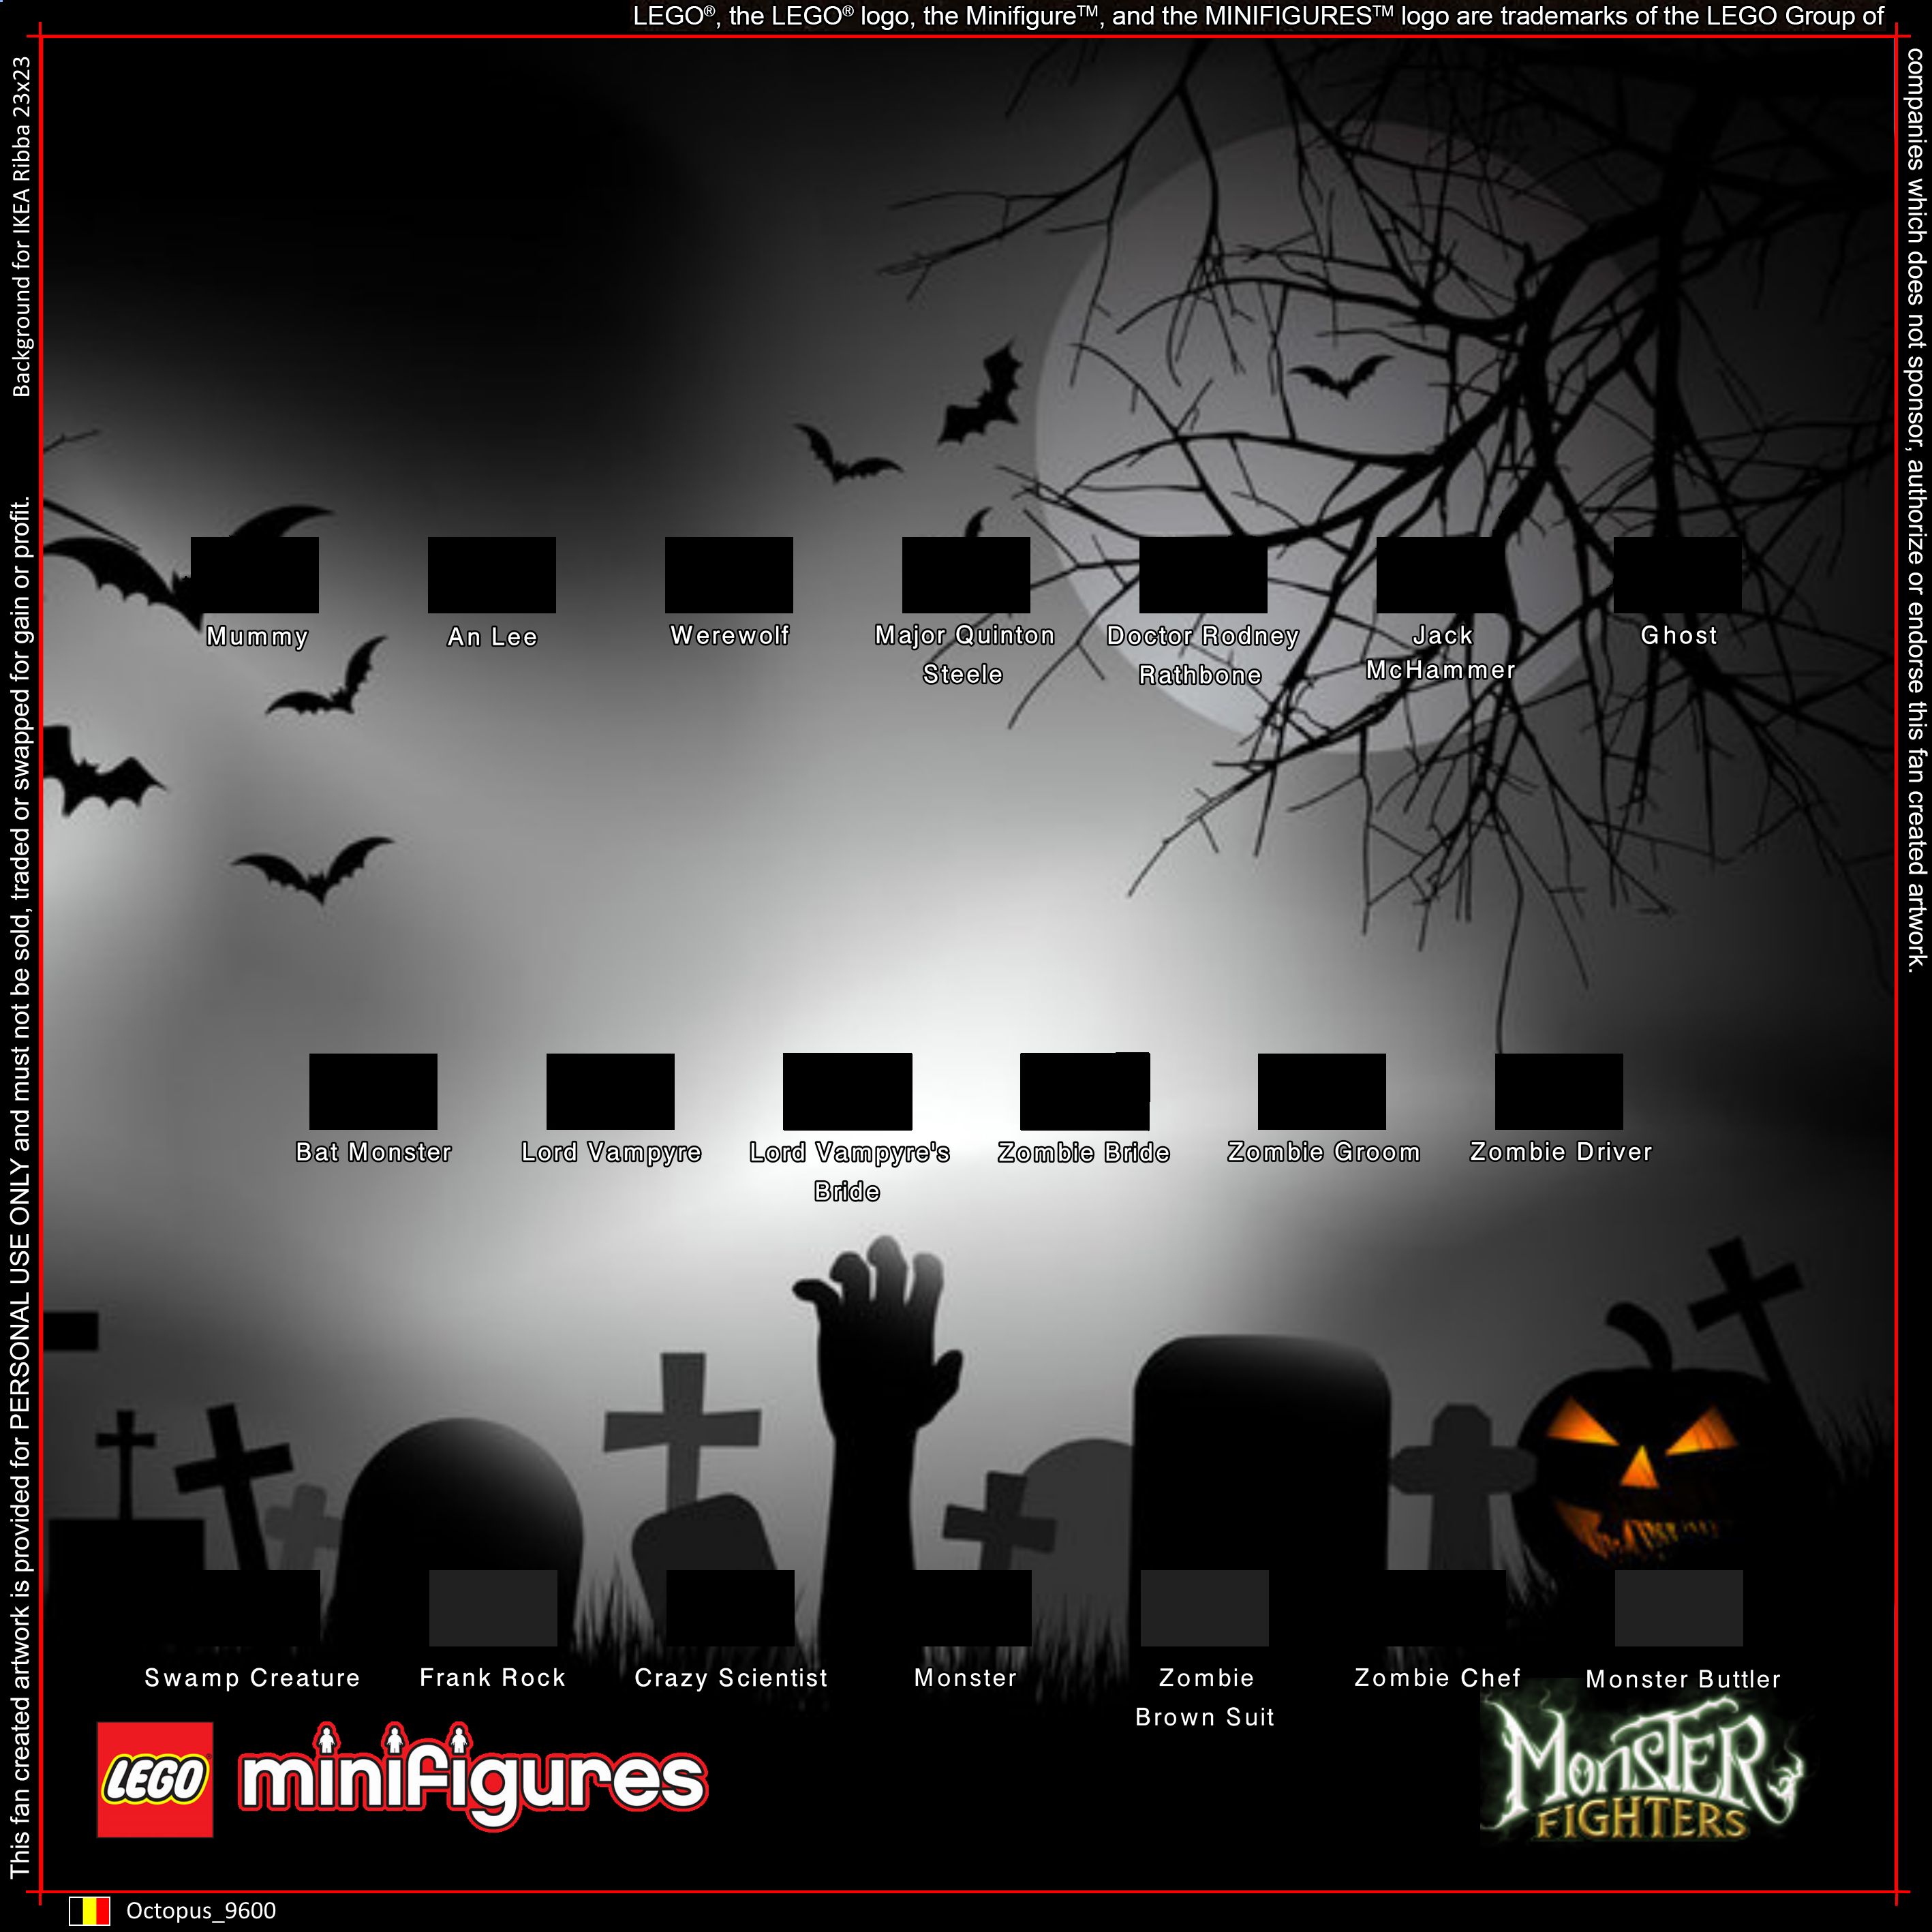 LEGO Monster Fighters Minifigures Background for IKEA Ribba 23x23 ...